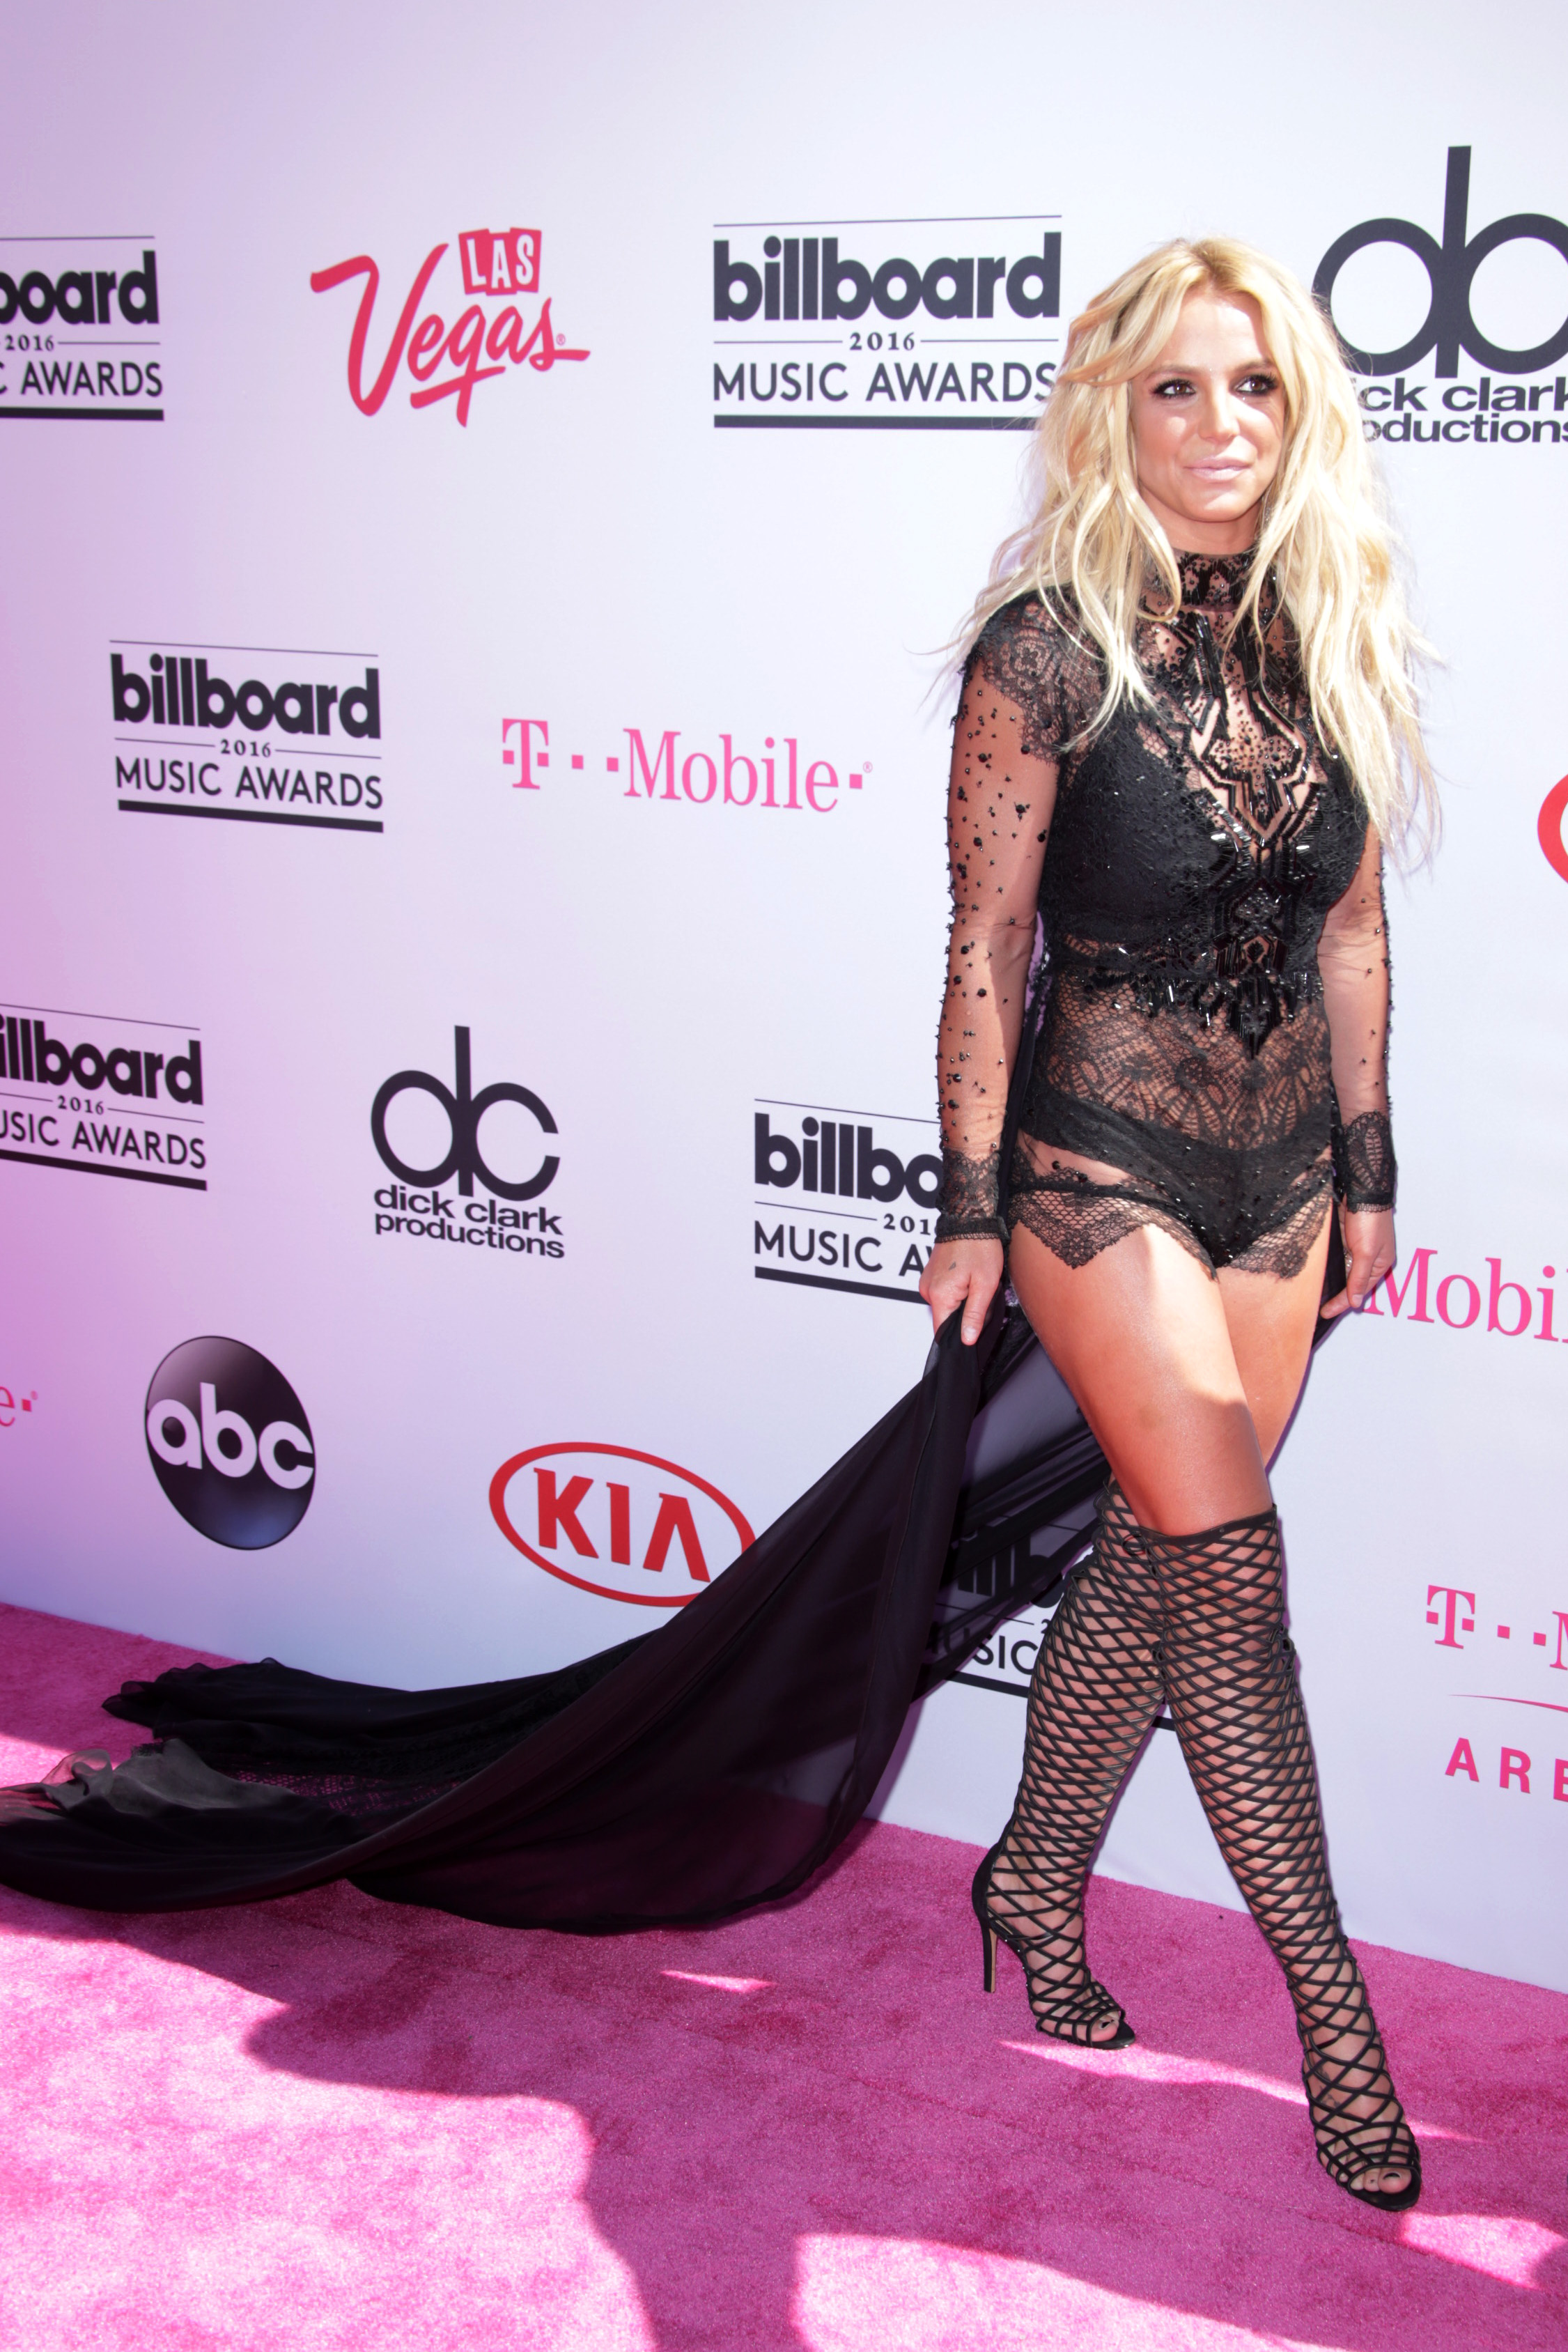 Britney Spears was announced to be performing at this year's MTV Video Music Awards, the first time she has performed at the event in 10 years.